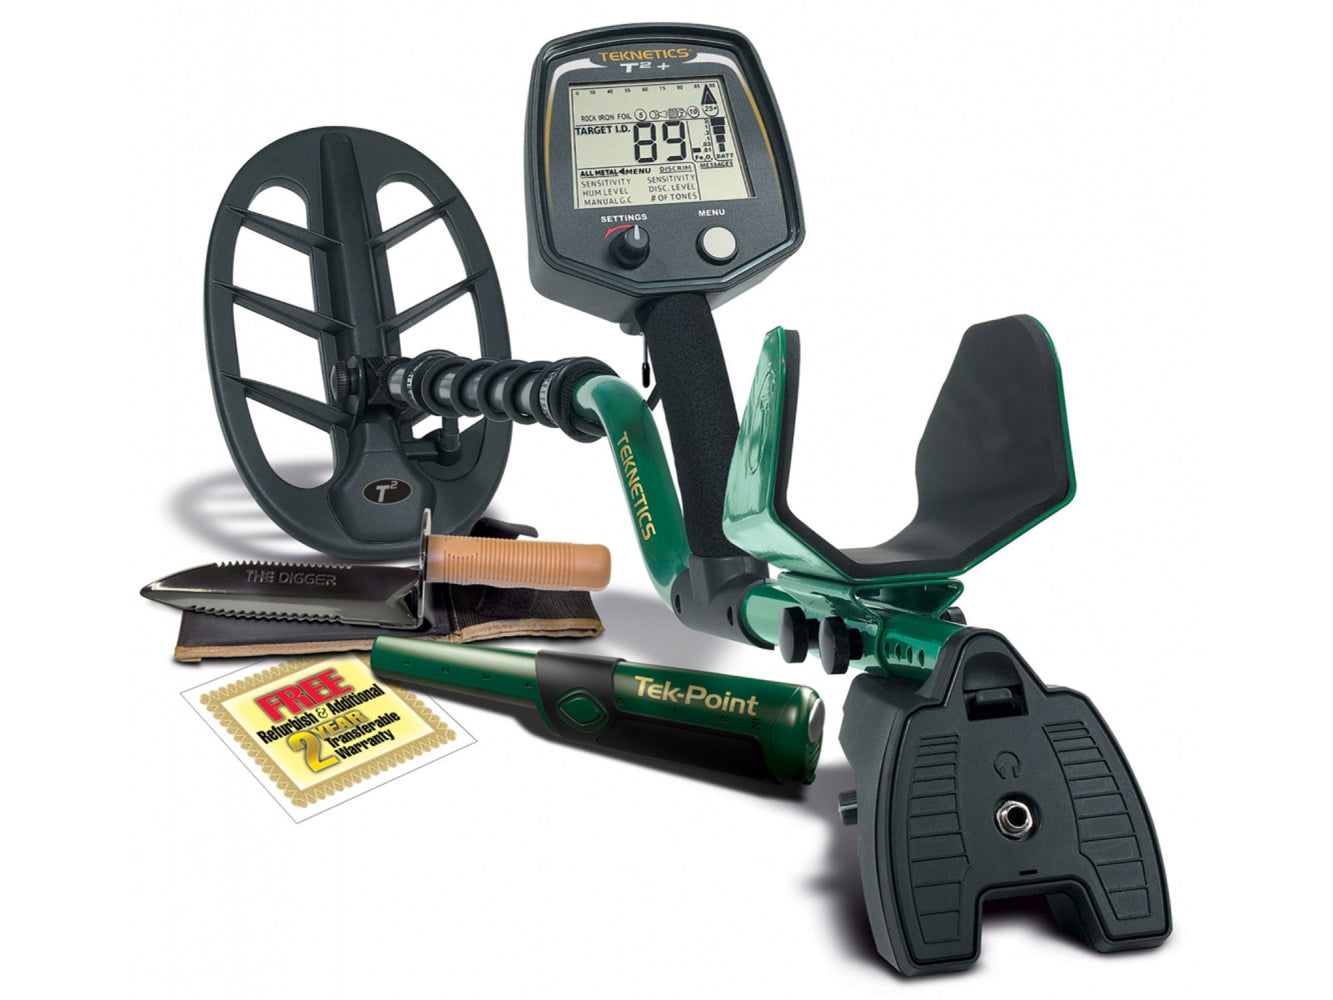 Teknetics T2+GWP Metal Detector Bundle